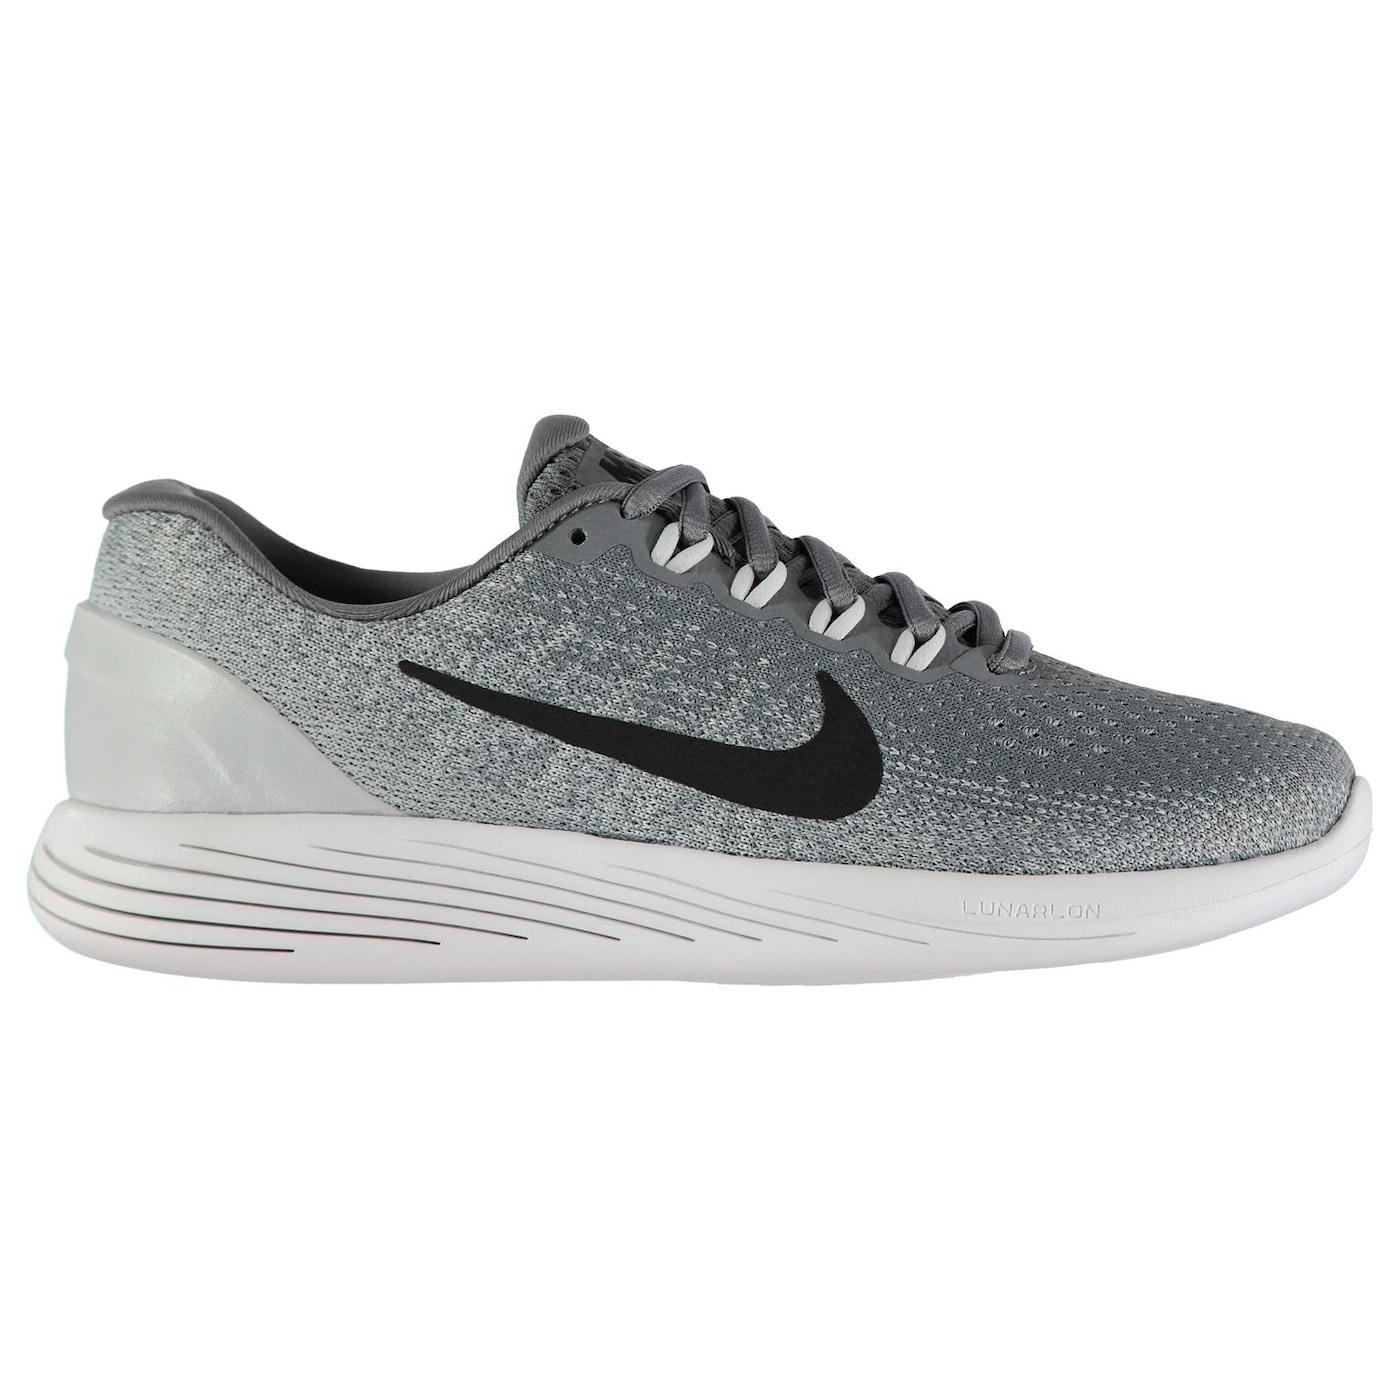 Nike LunarGlide 9 Ladies Running Shoes